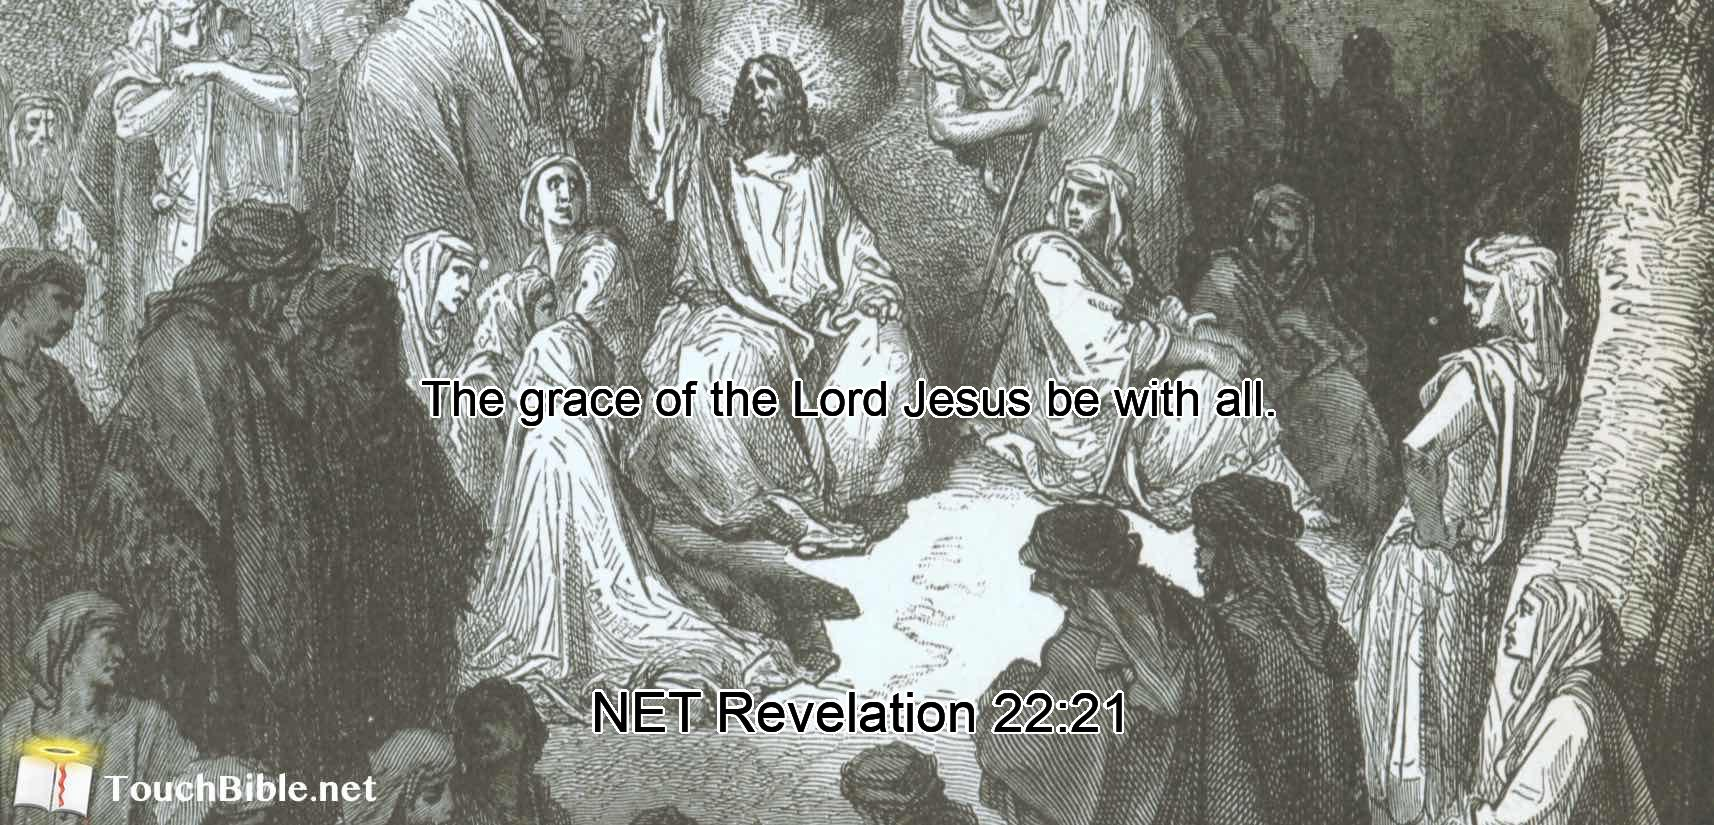 The grace of the Lord Jesus be with all.